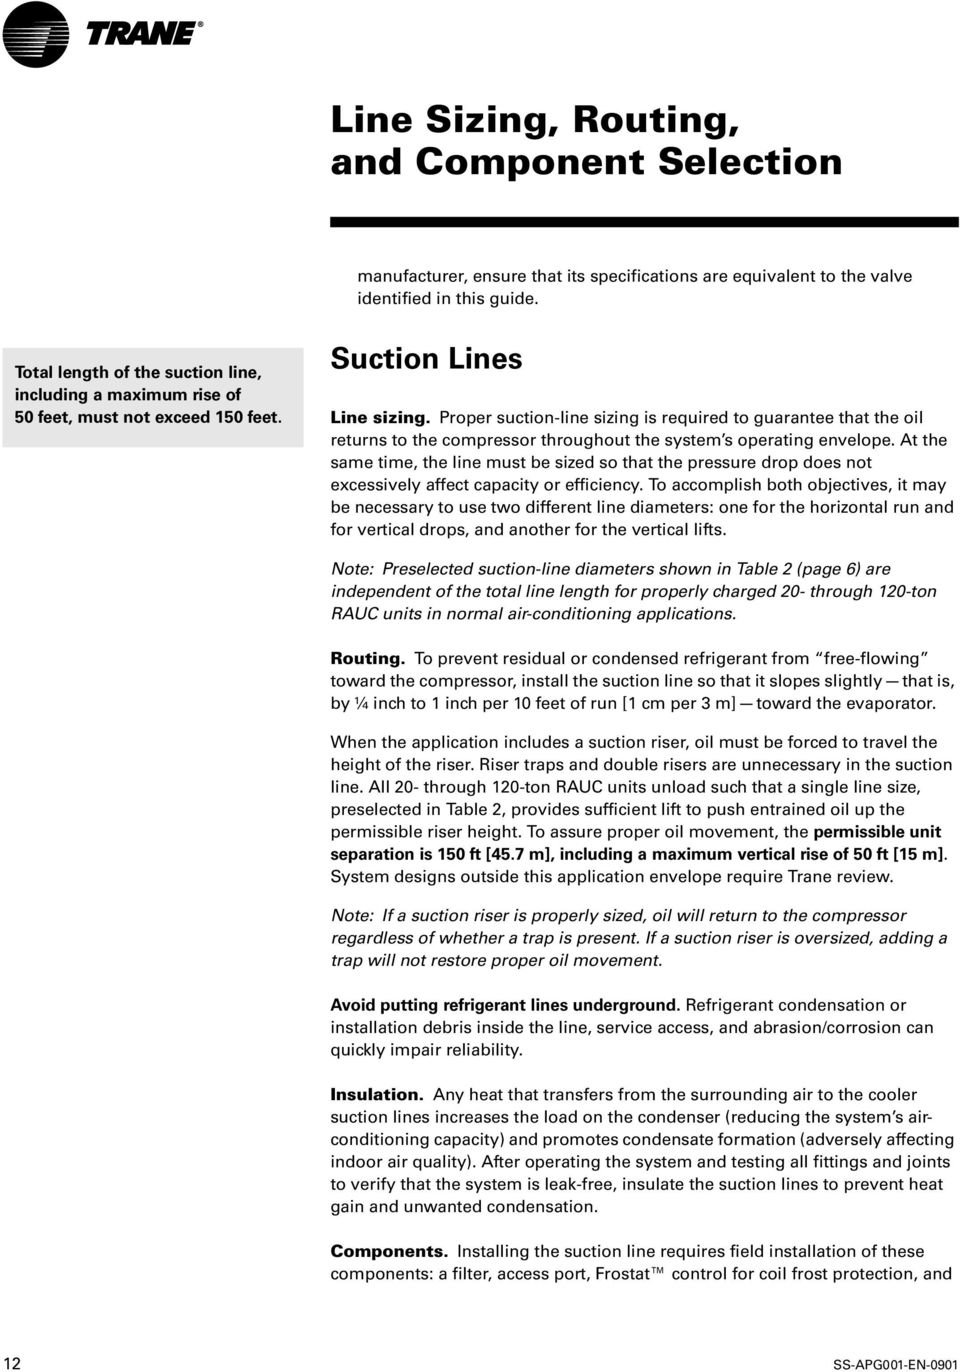 Tube Size and Component Selection - PDF